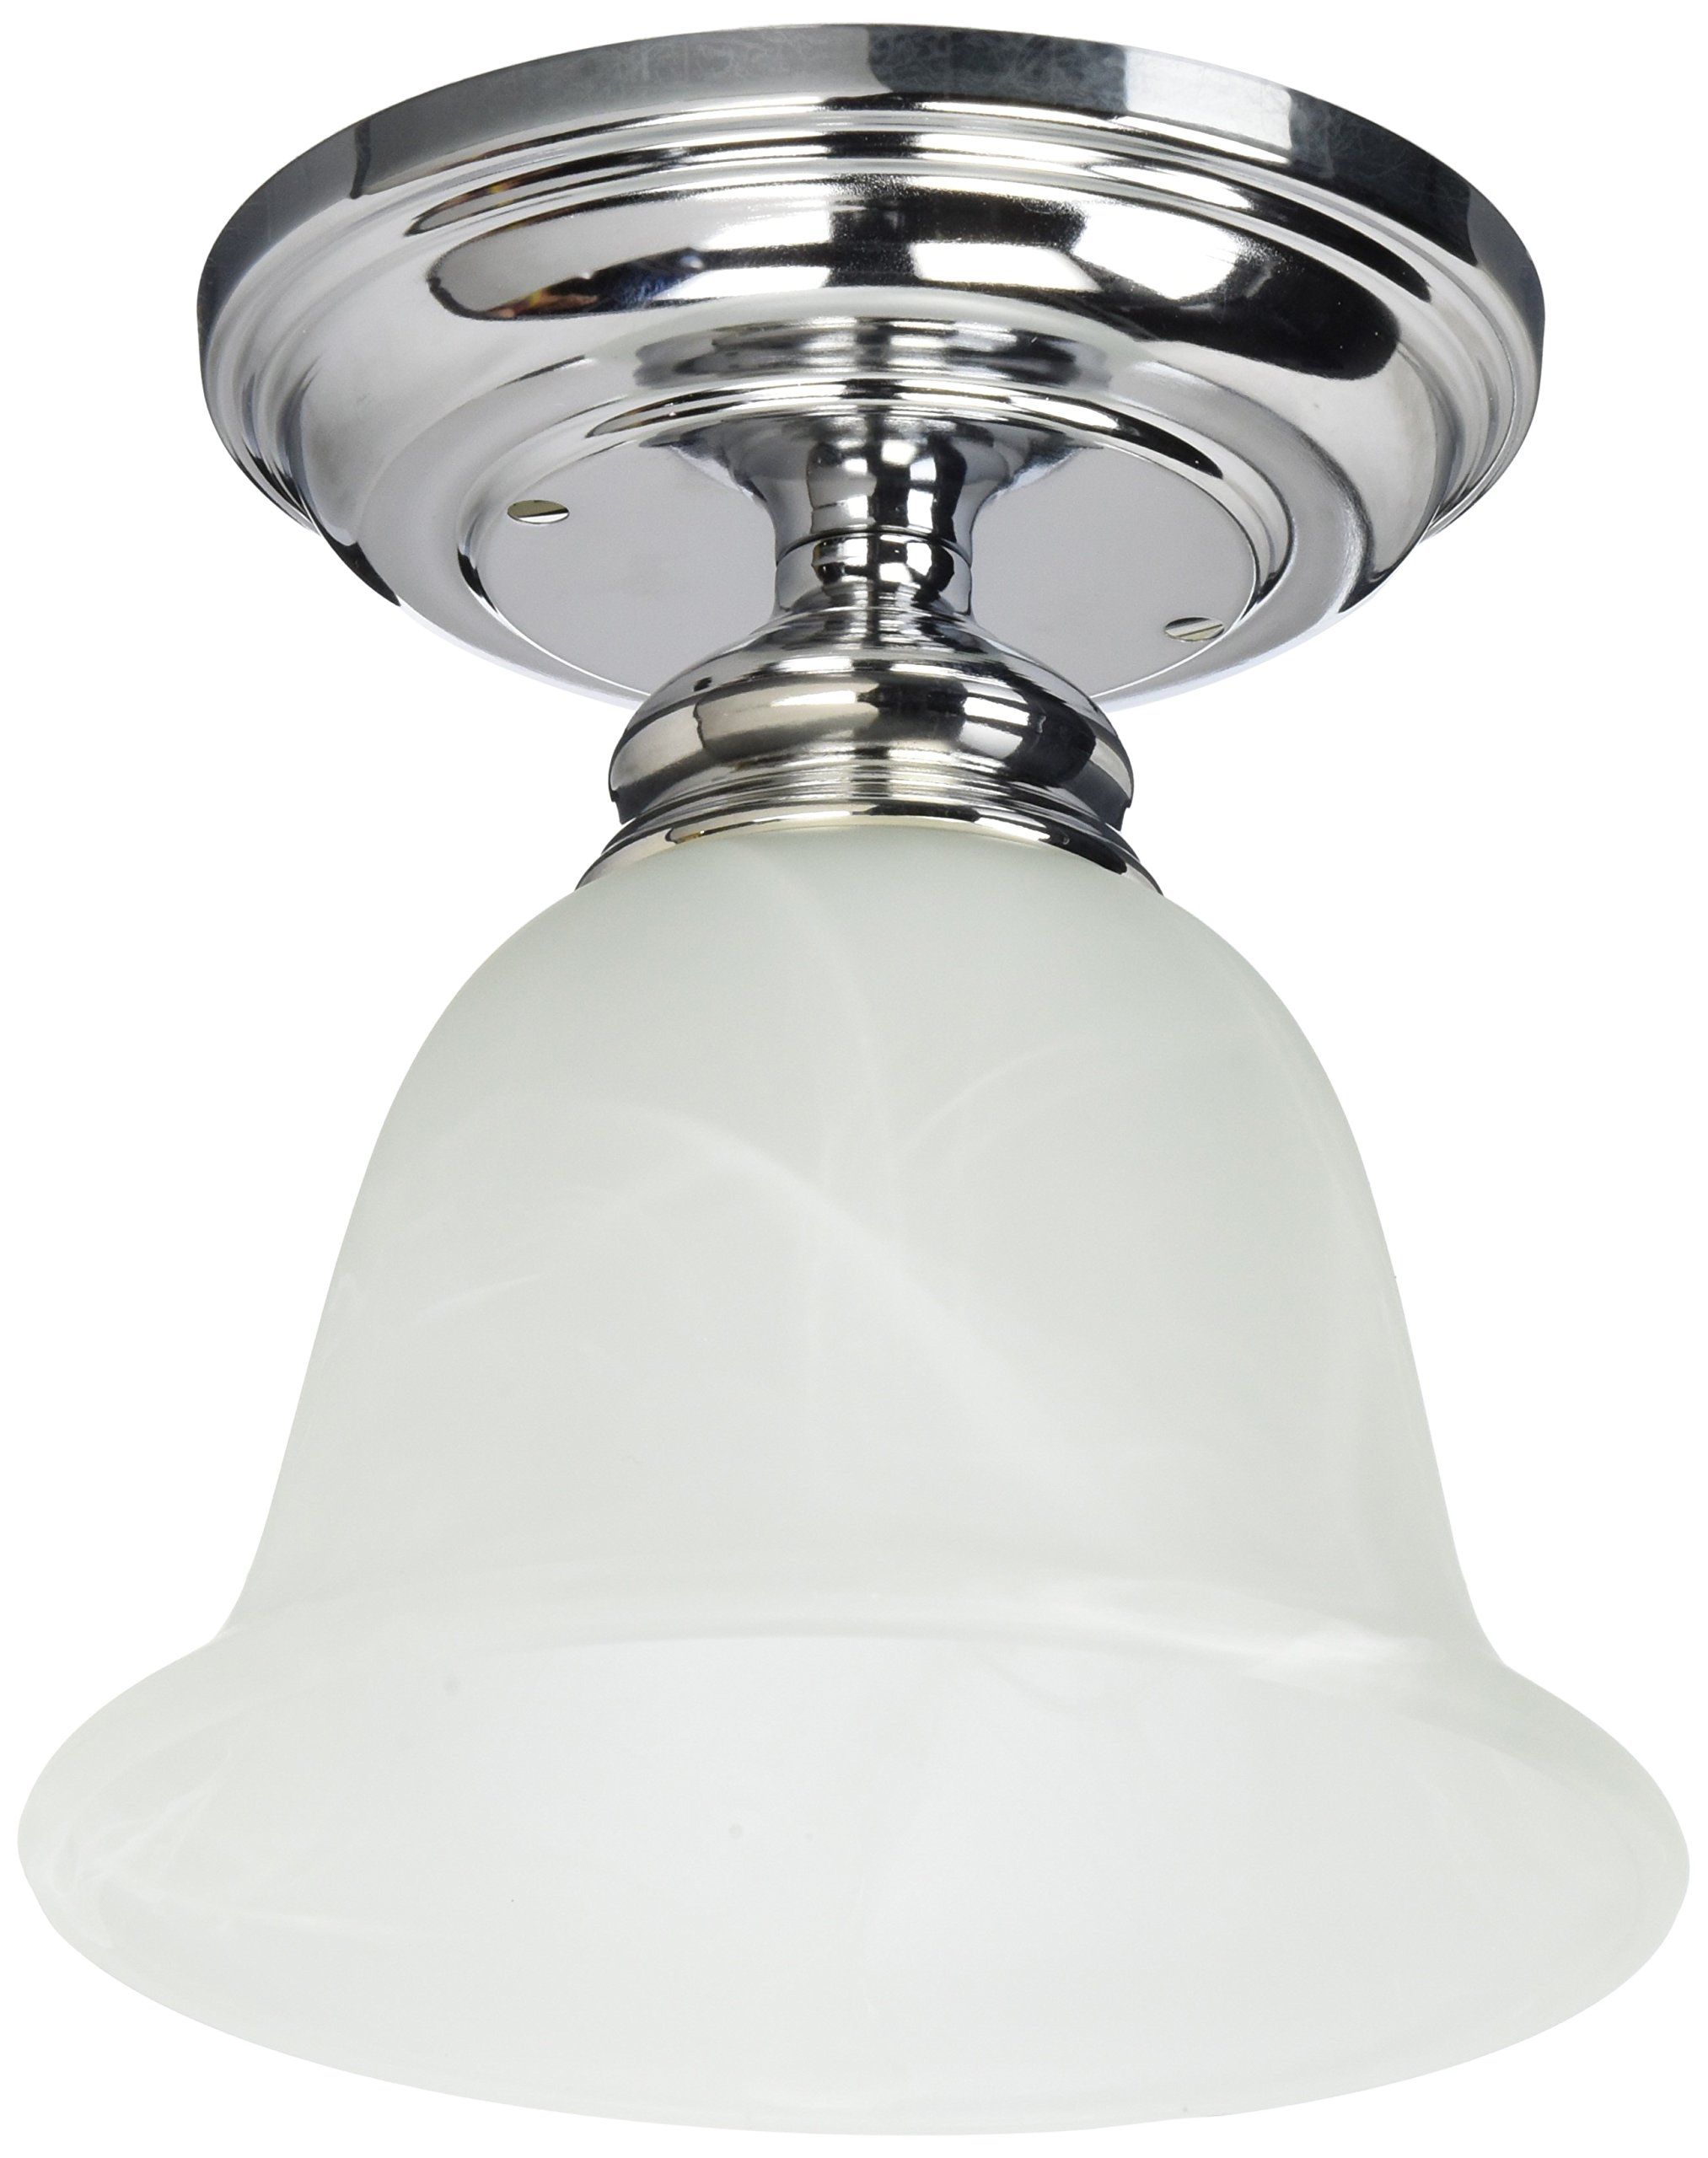 Livex Lighting 1350-05 Essex Ceiling Mount